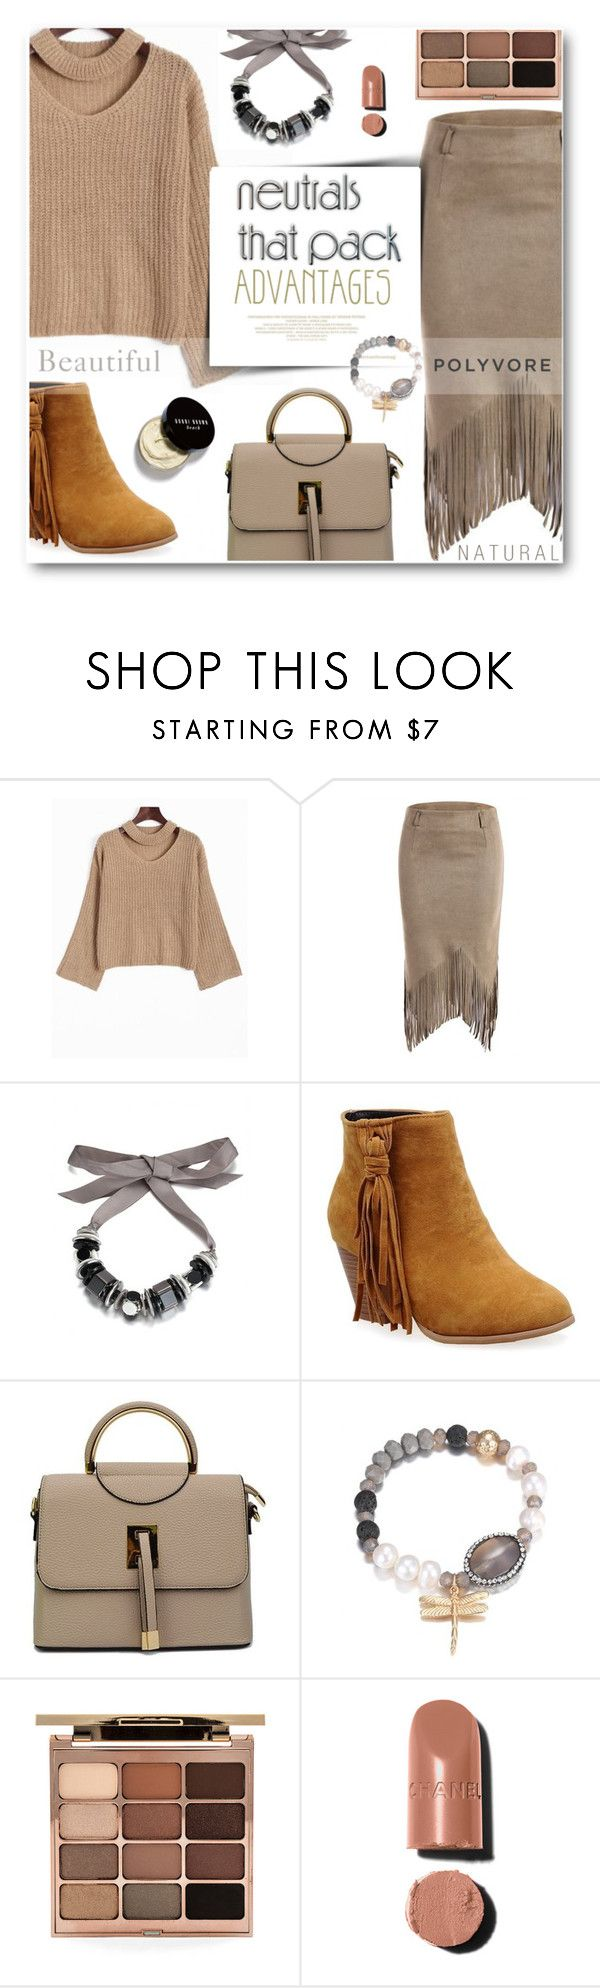 """2. Cool neutrals"" by wannanna ❤ liked on Polyvore featuring Stila, Chanel, Bobbi Brown Cosmetics, bag, neutrals, jumper and fringeskirt"